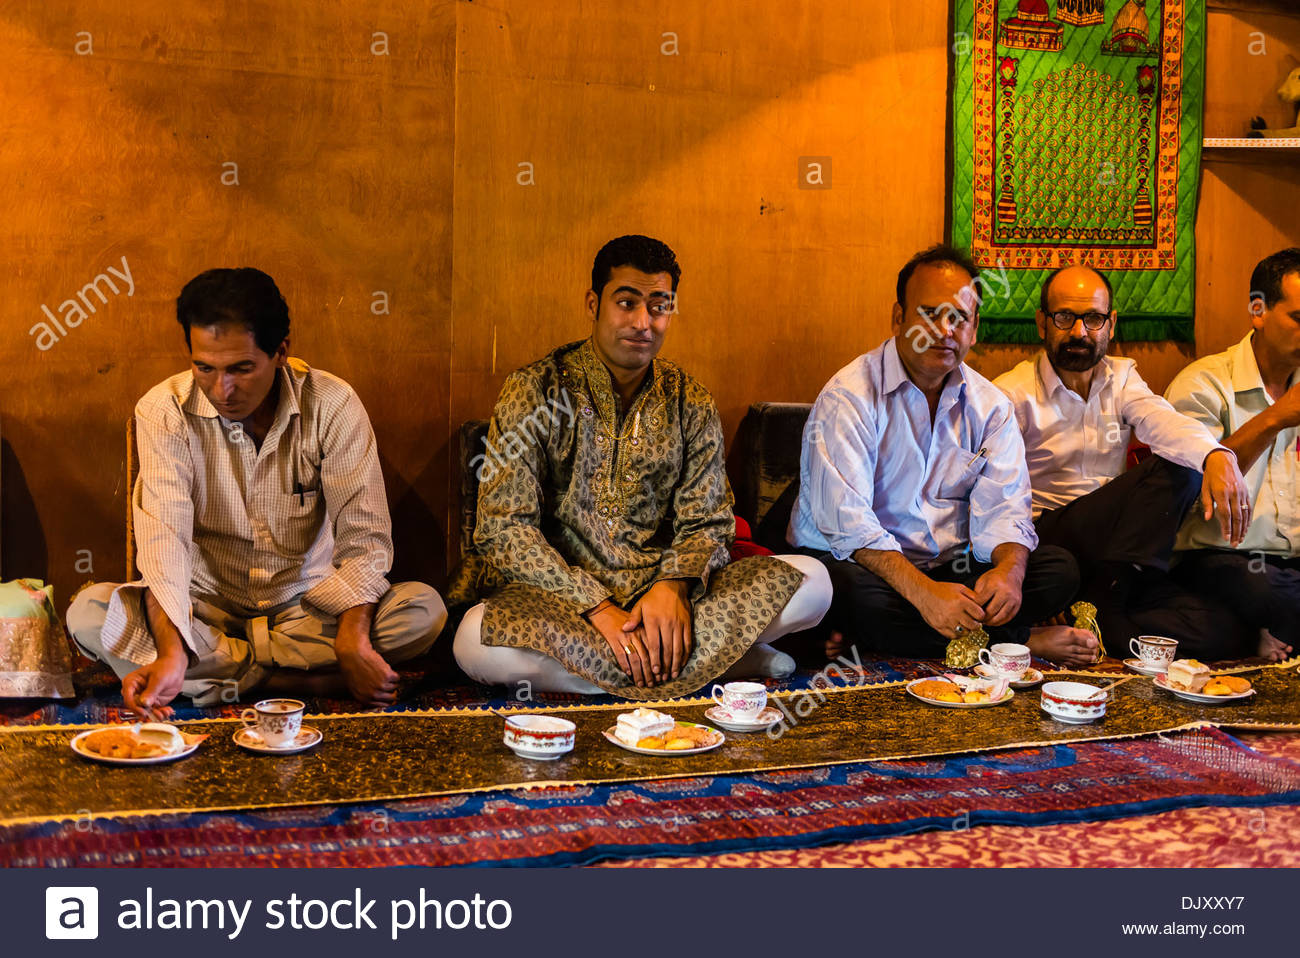 muslim single men in blaine Meet single muslim men in blaine are you a blaine single looking for a single muslim man to be your partner in life zoosk online dating makes it easy to connect with.